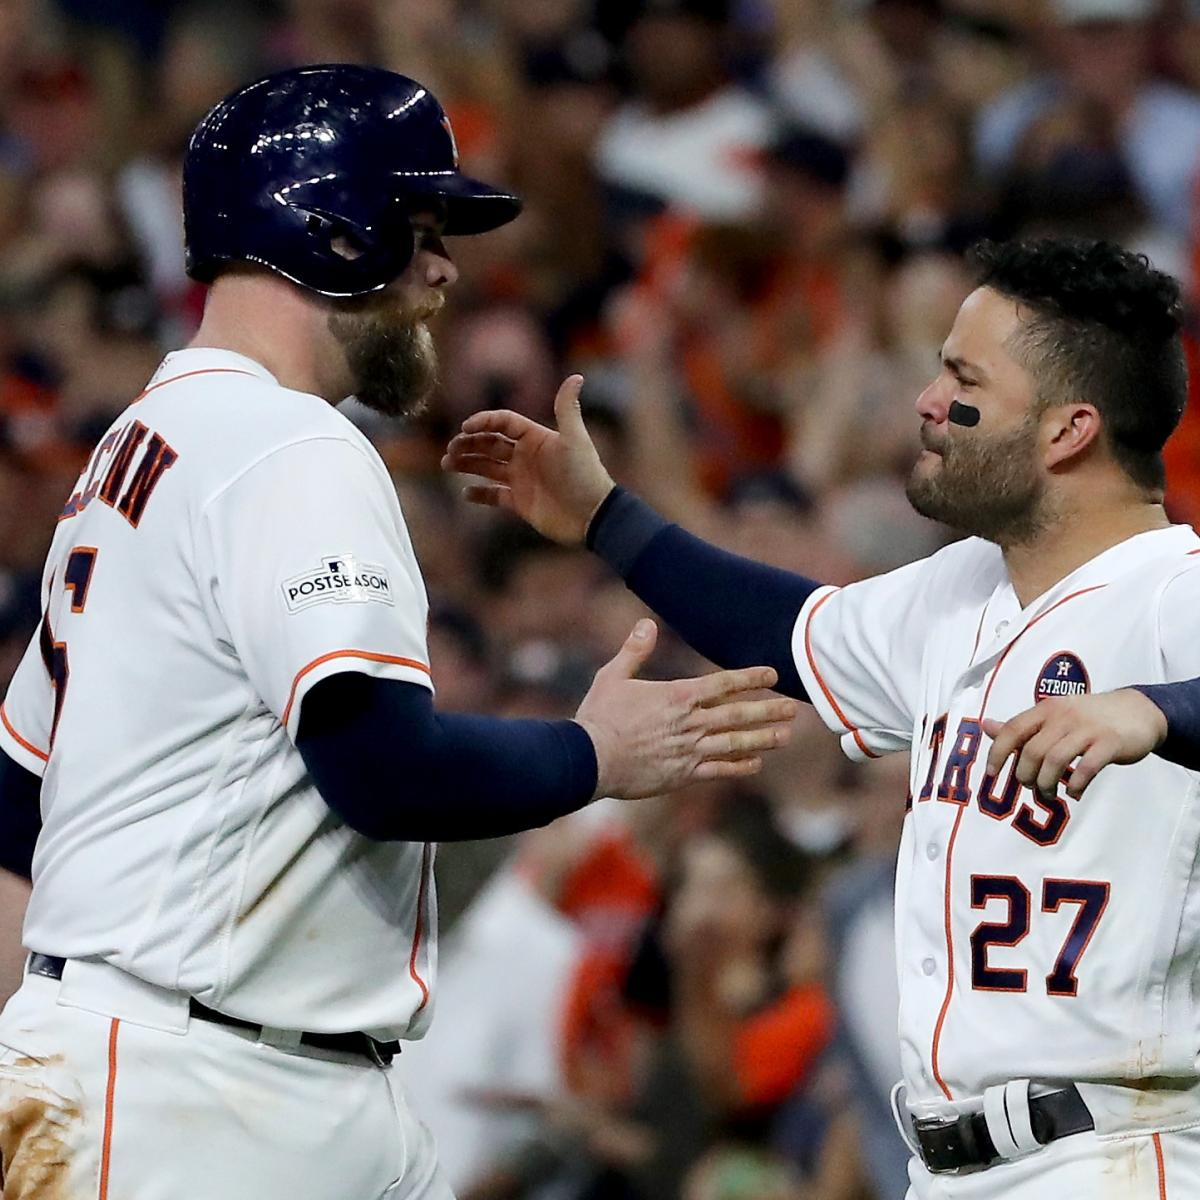 Jose Altuve, Astros Advance to World Series with ALCS Game 7 Win vs. Yankees